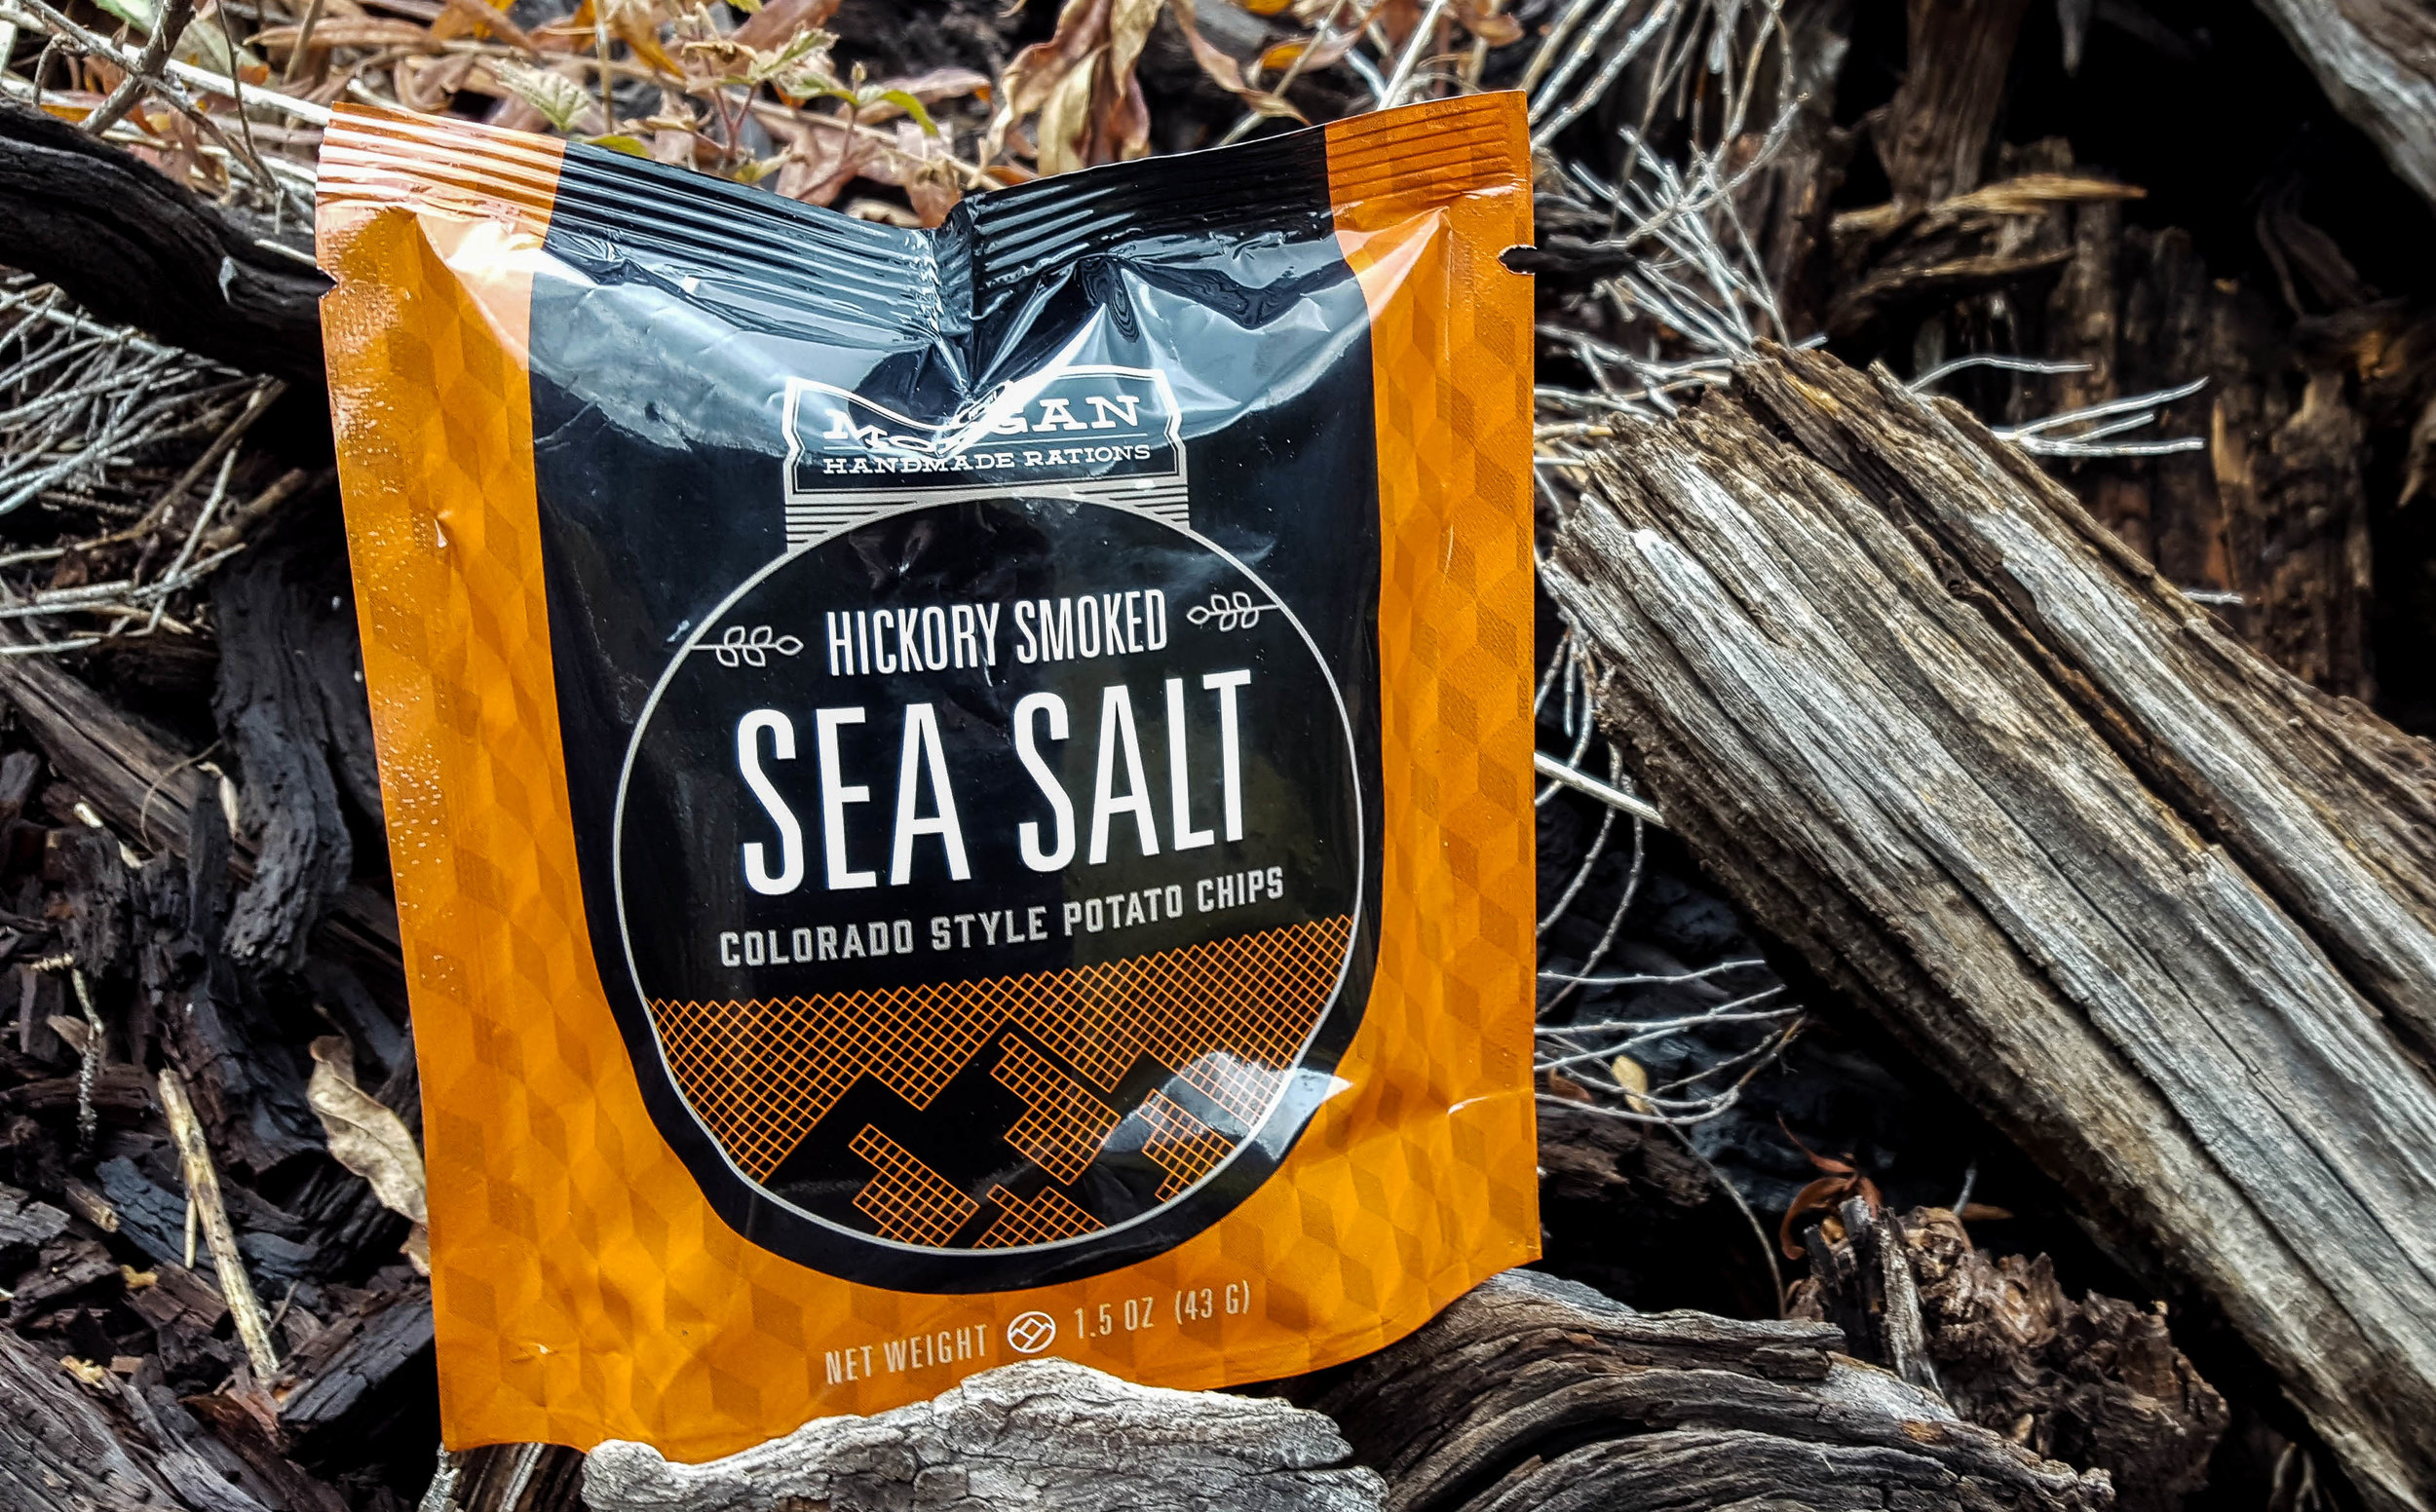 Hickory Smoked Sea Salt - Subtle smoke and lightly salted results in our version of potato bacon.